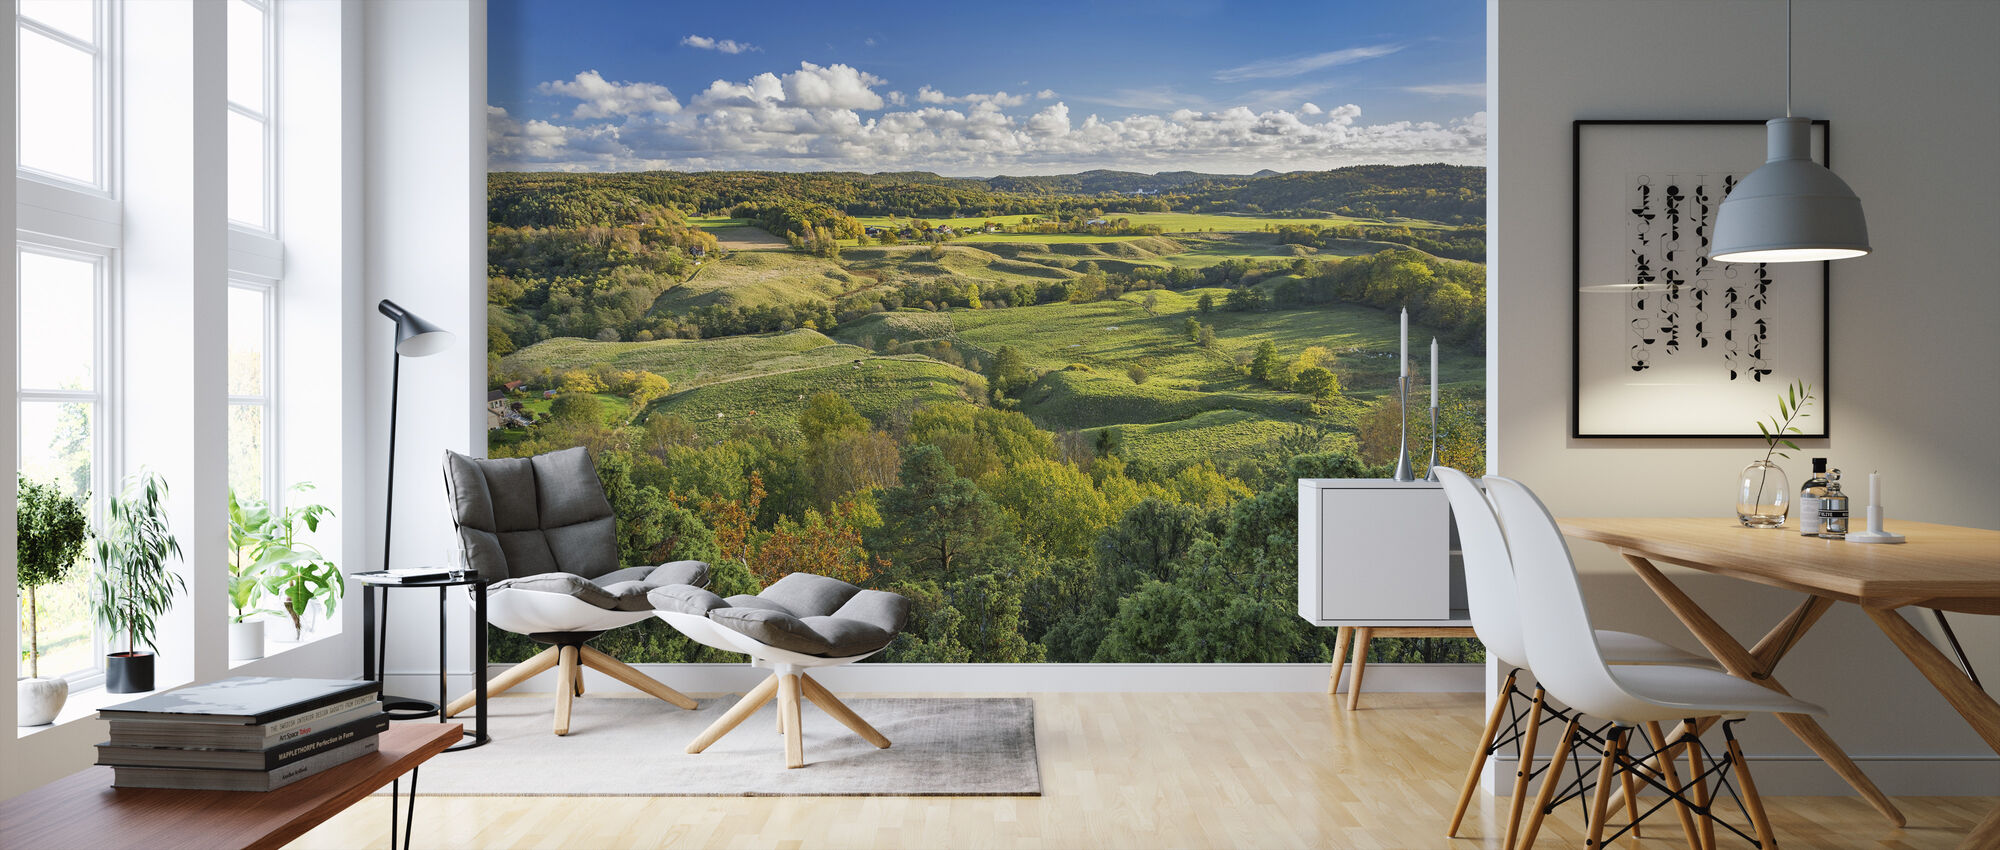 Open Countryside of Sweden - Wallpaper - Living Room